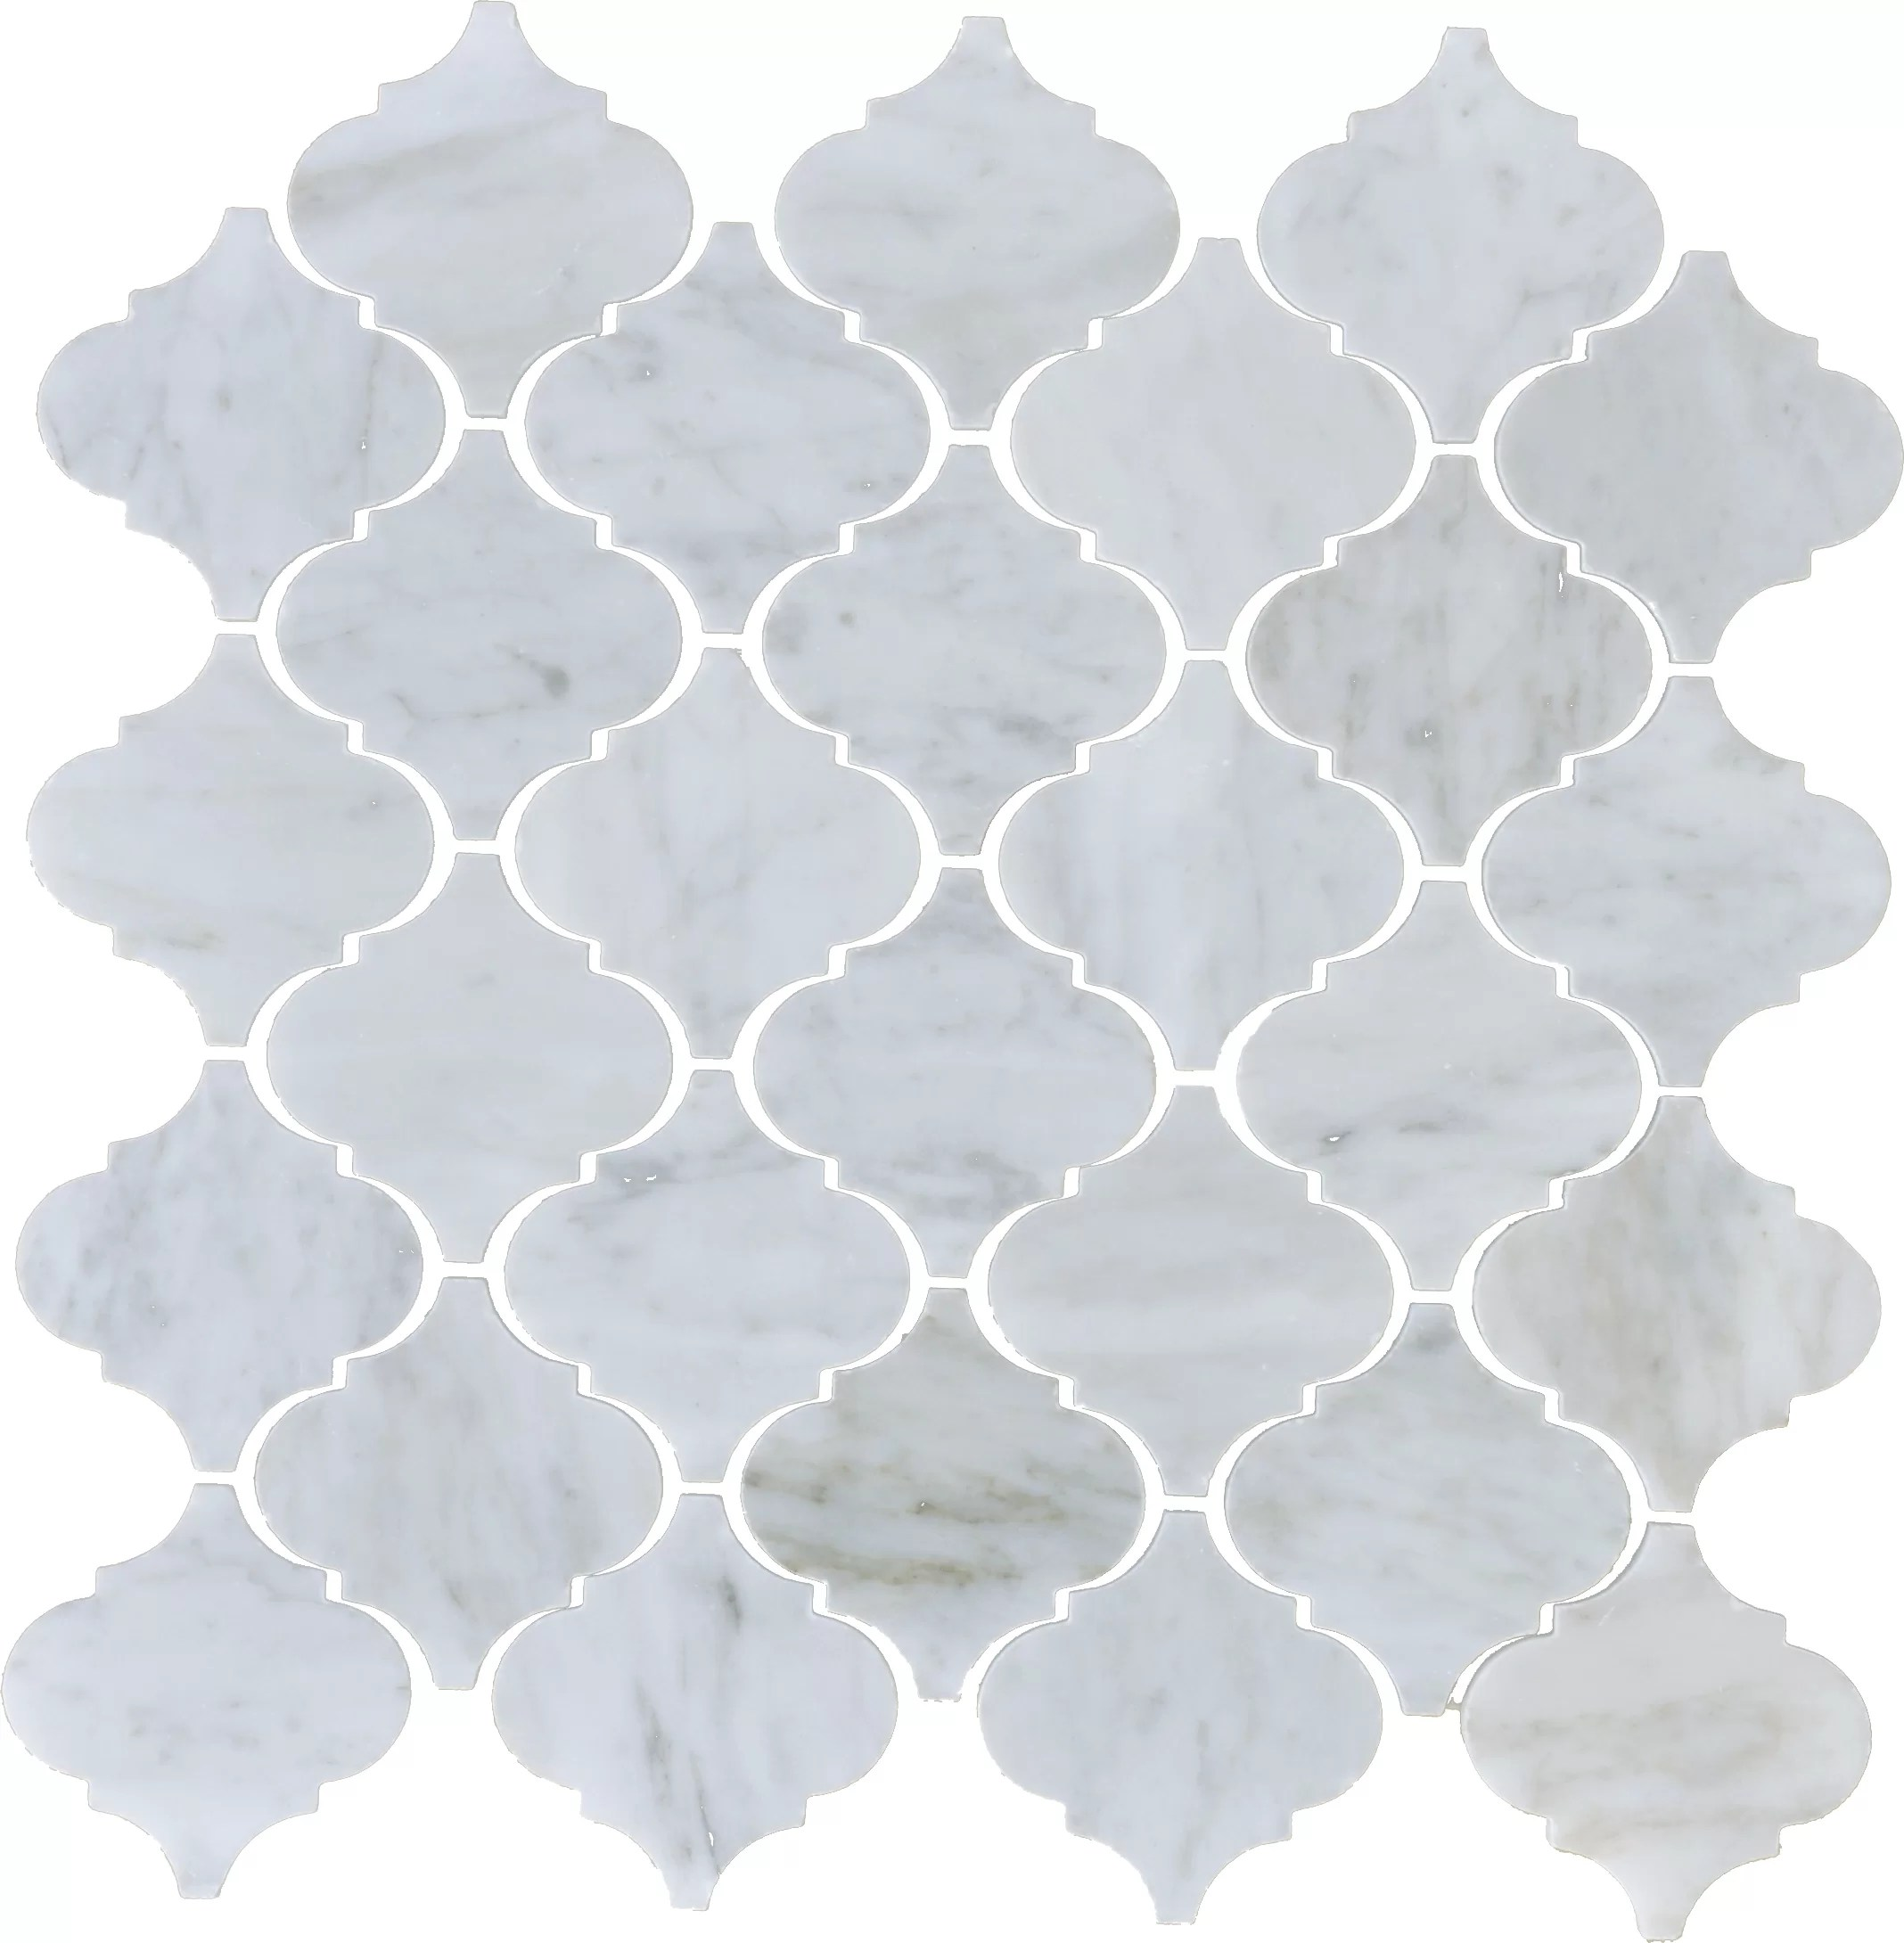 Arabesque Marble Tile Carrara Arabesque Marble Mosaic Tile In White